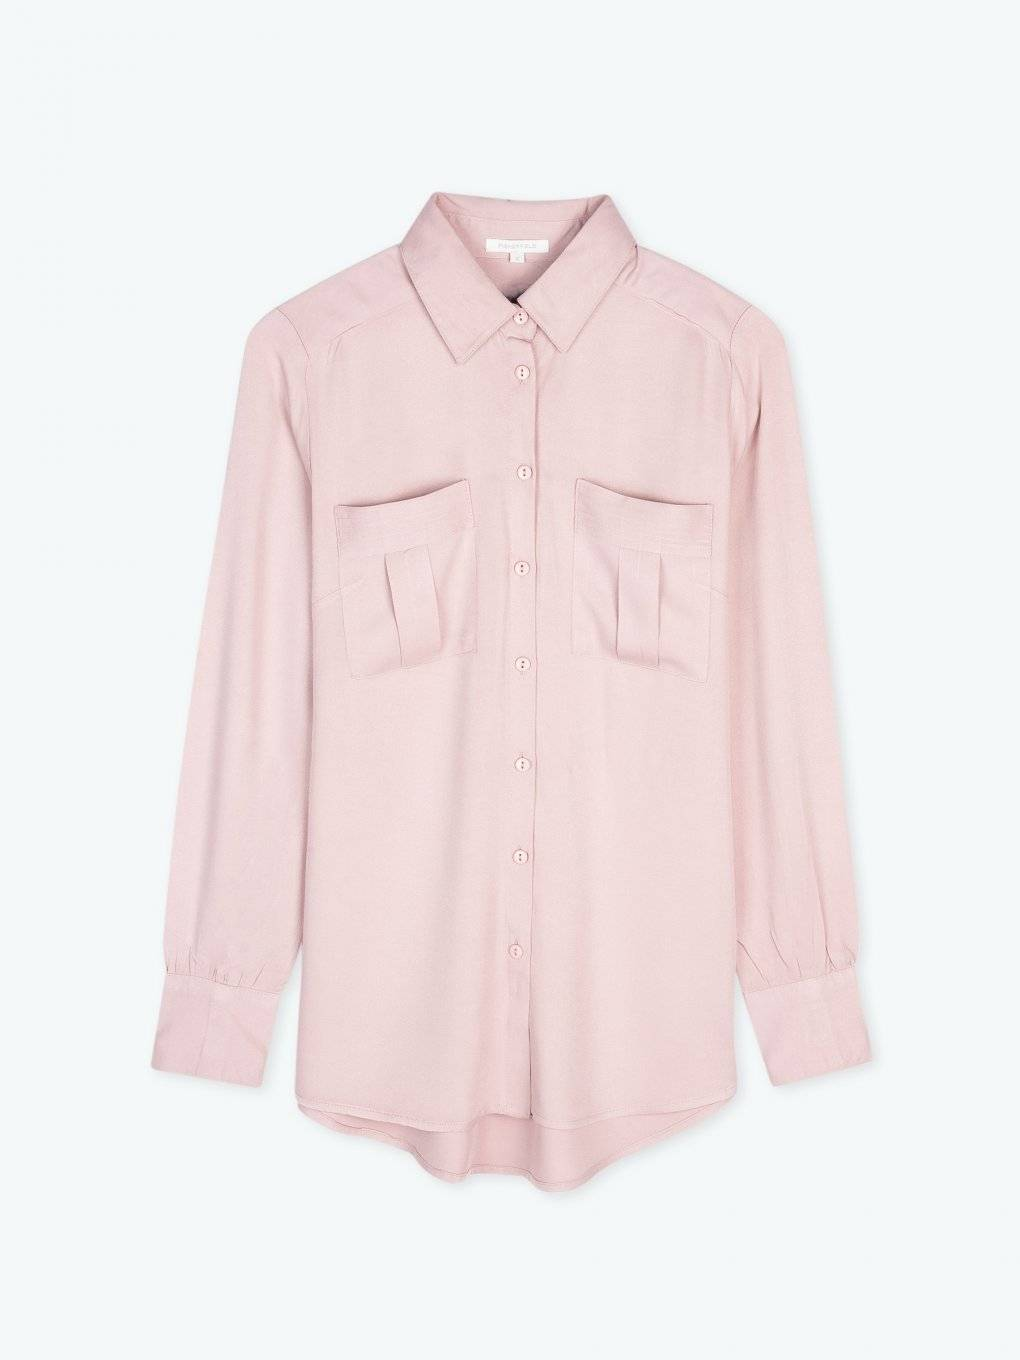 Blouse with chest pockets